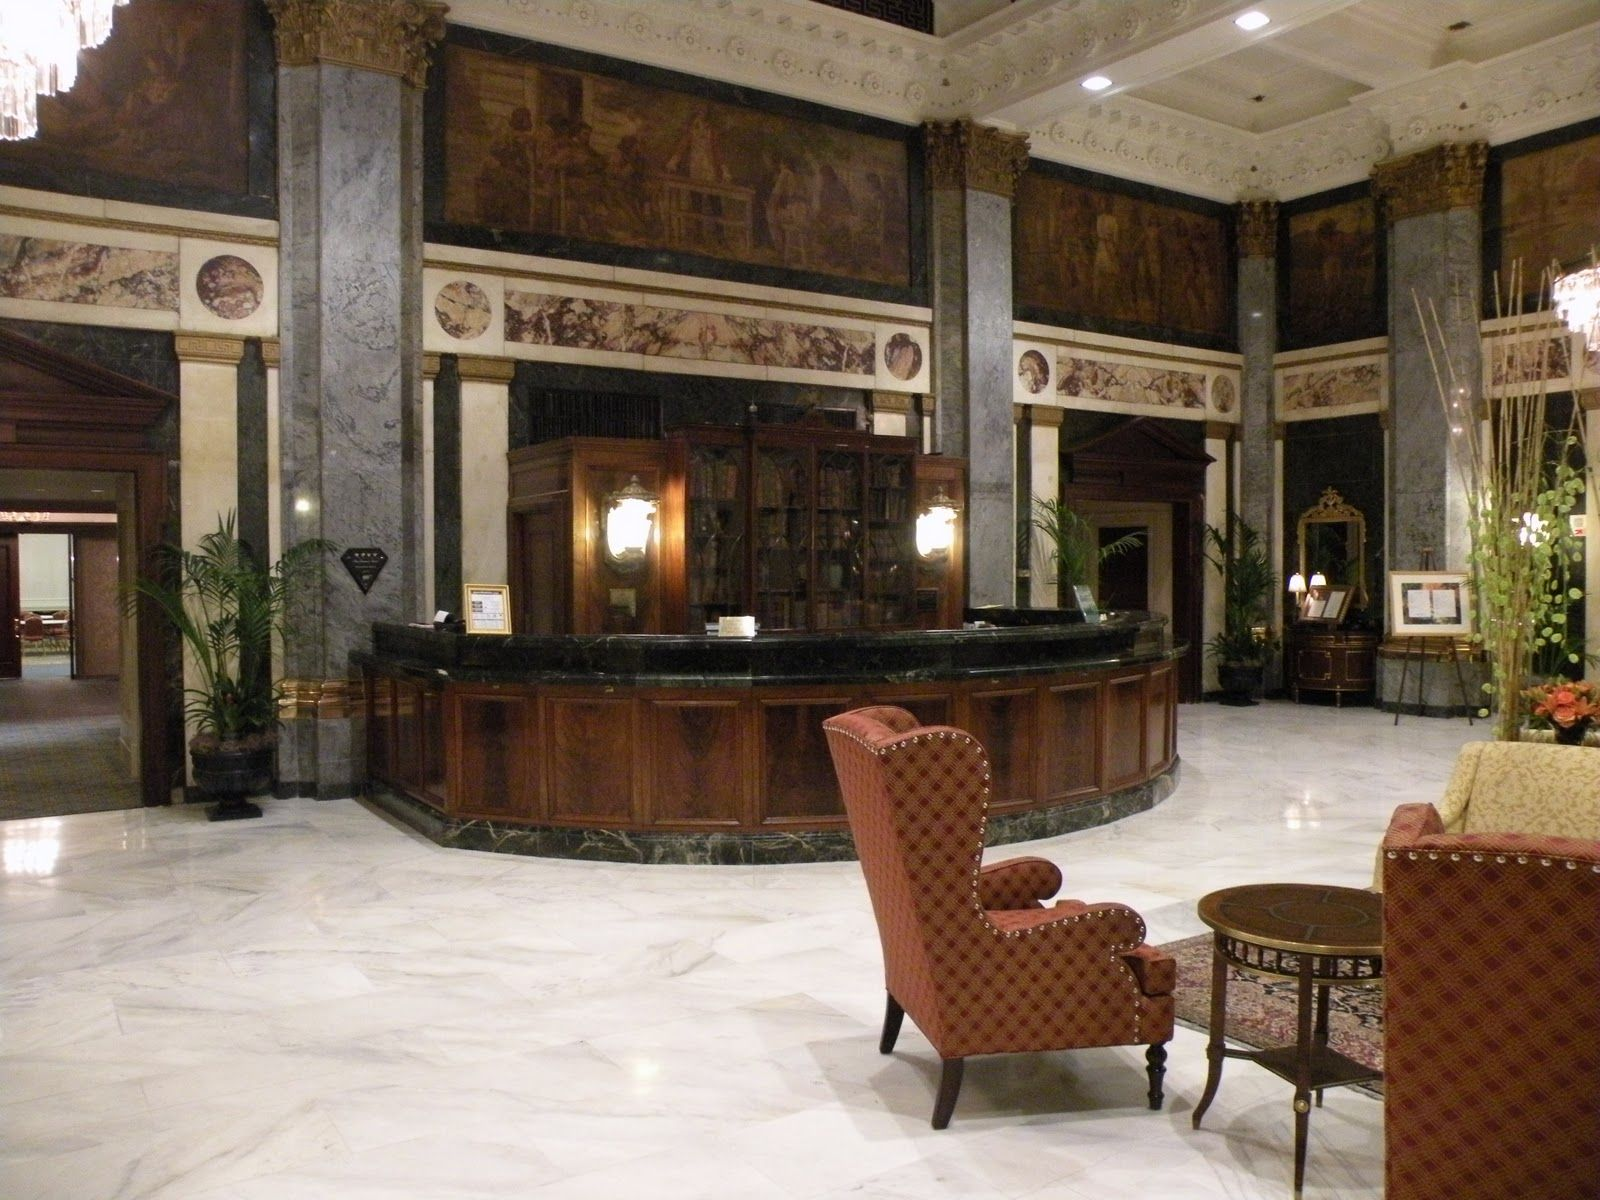 Embassy Suites Orlando — Lake Buena Vista South |Hotel Front Office Lobby